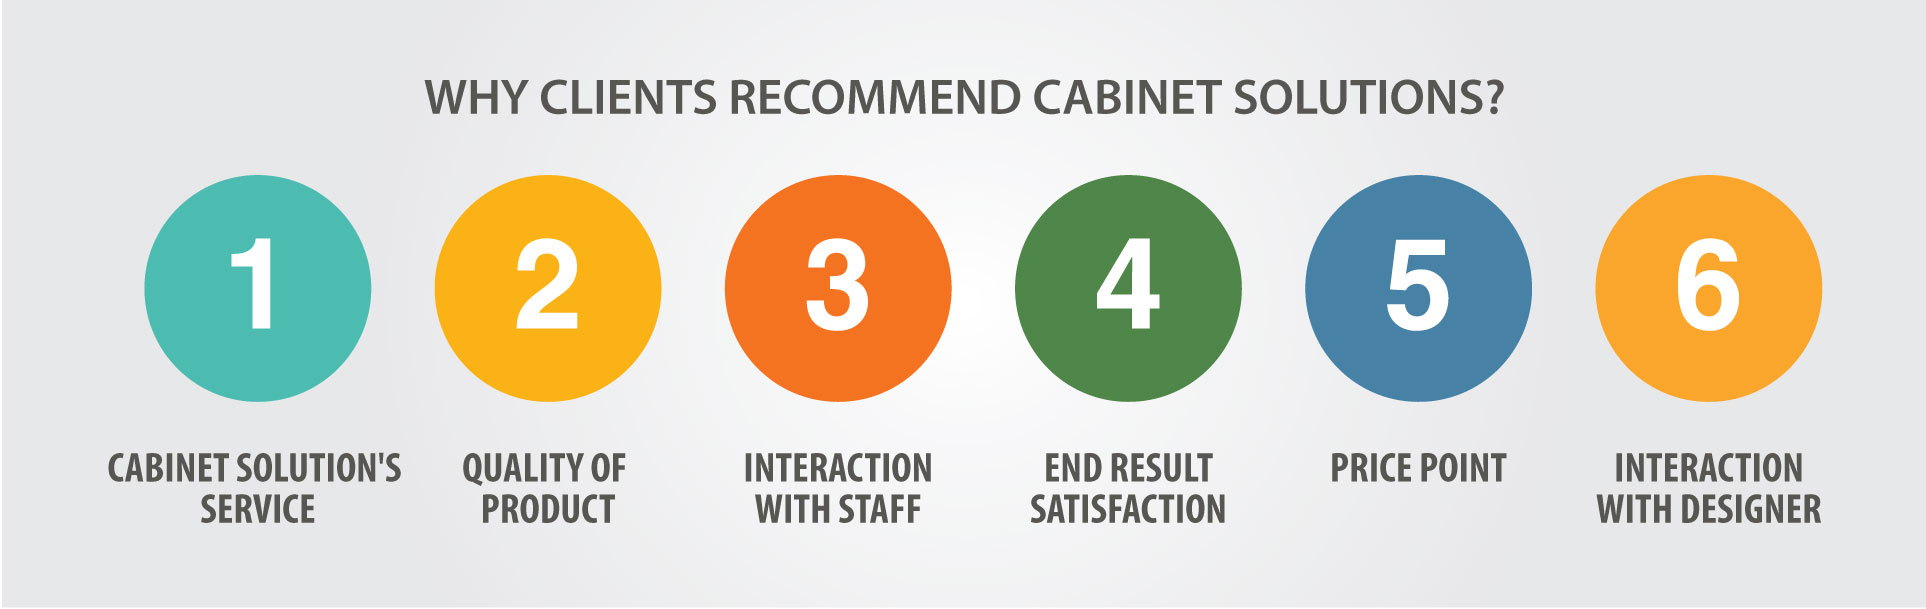 Cabinet Solutions Customer Feedback Overall Impression